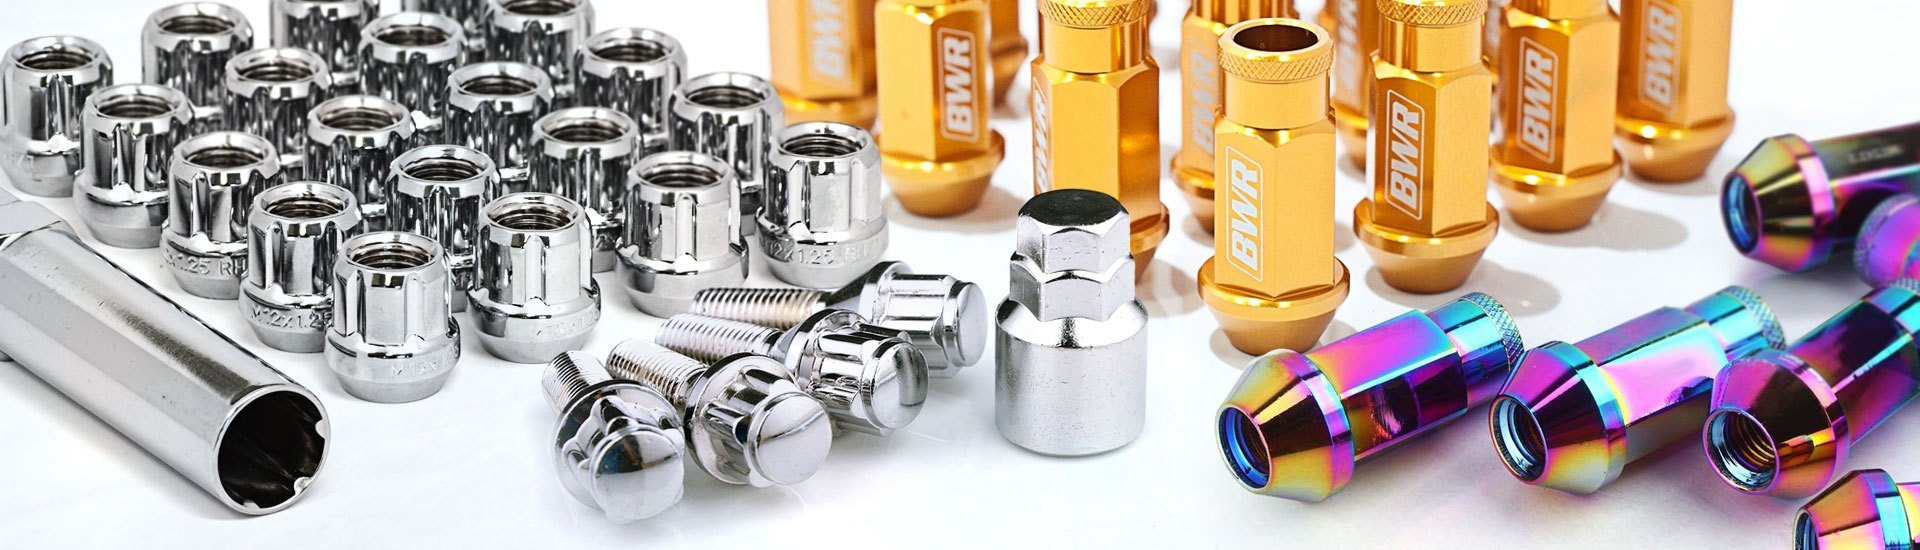 Lug Nuts and Locks Dress Up And Protect Your Wheels